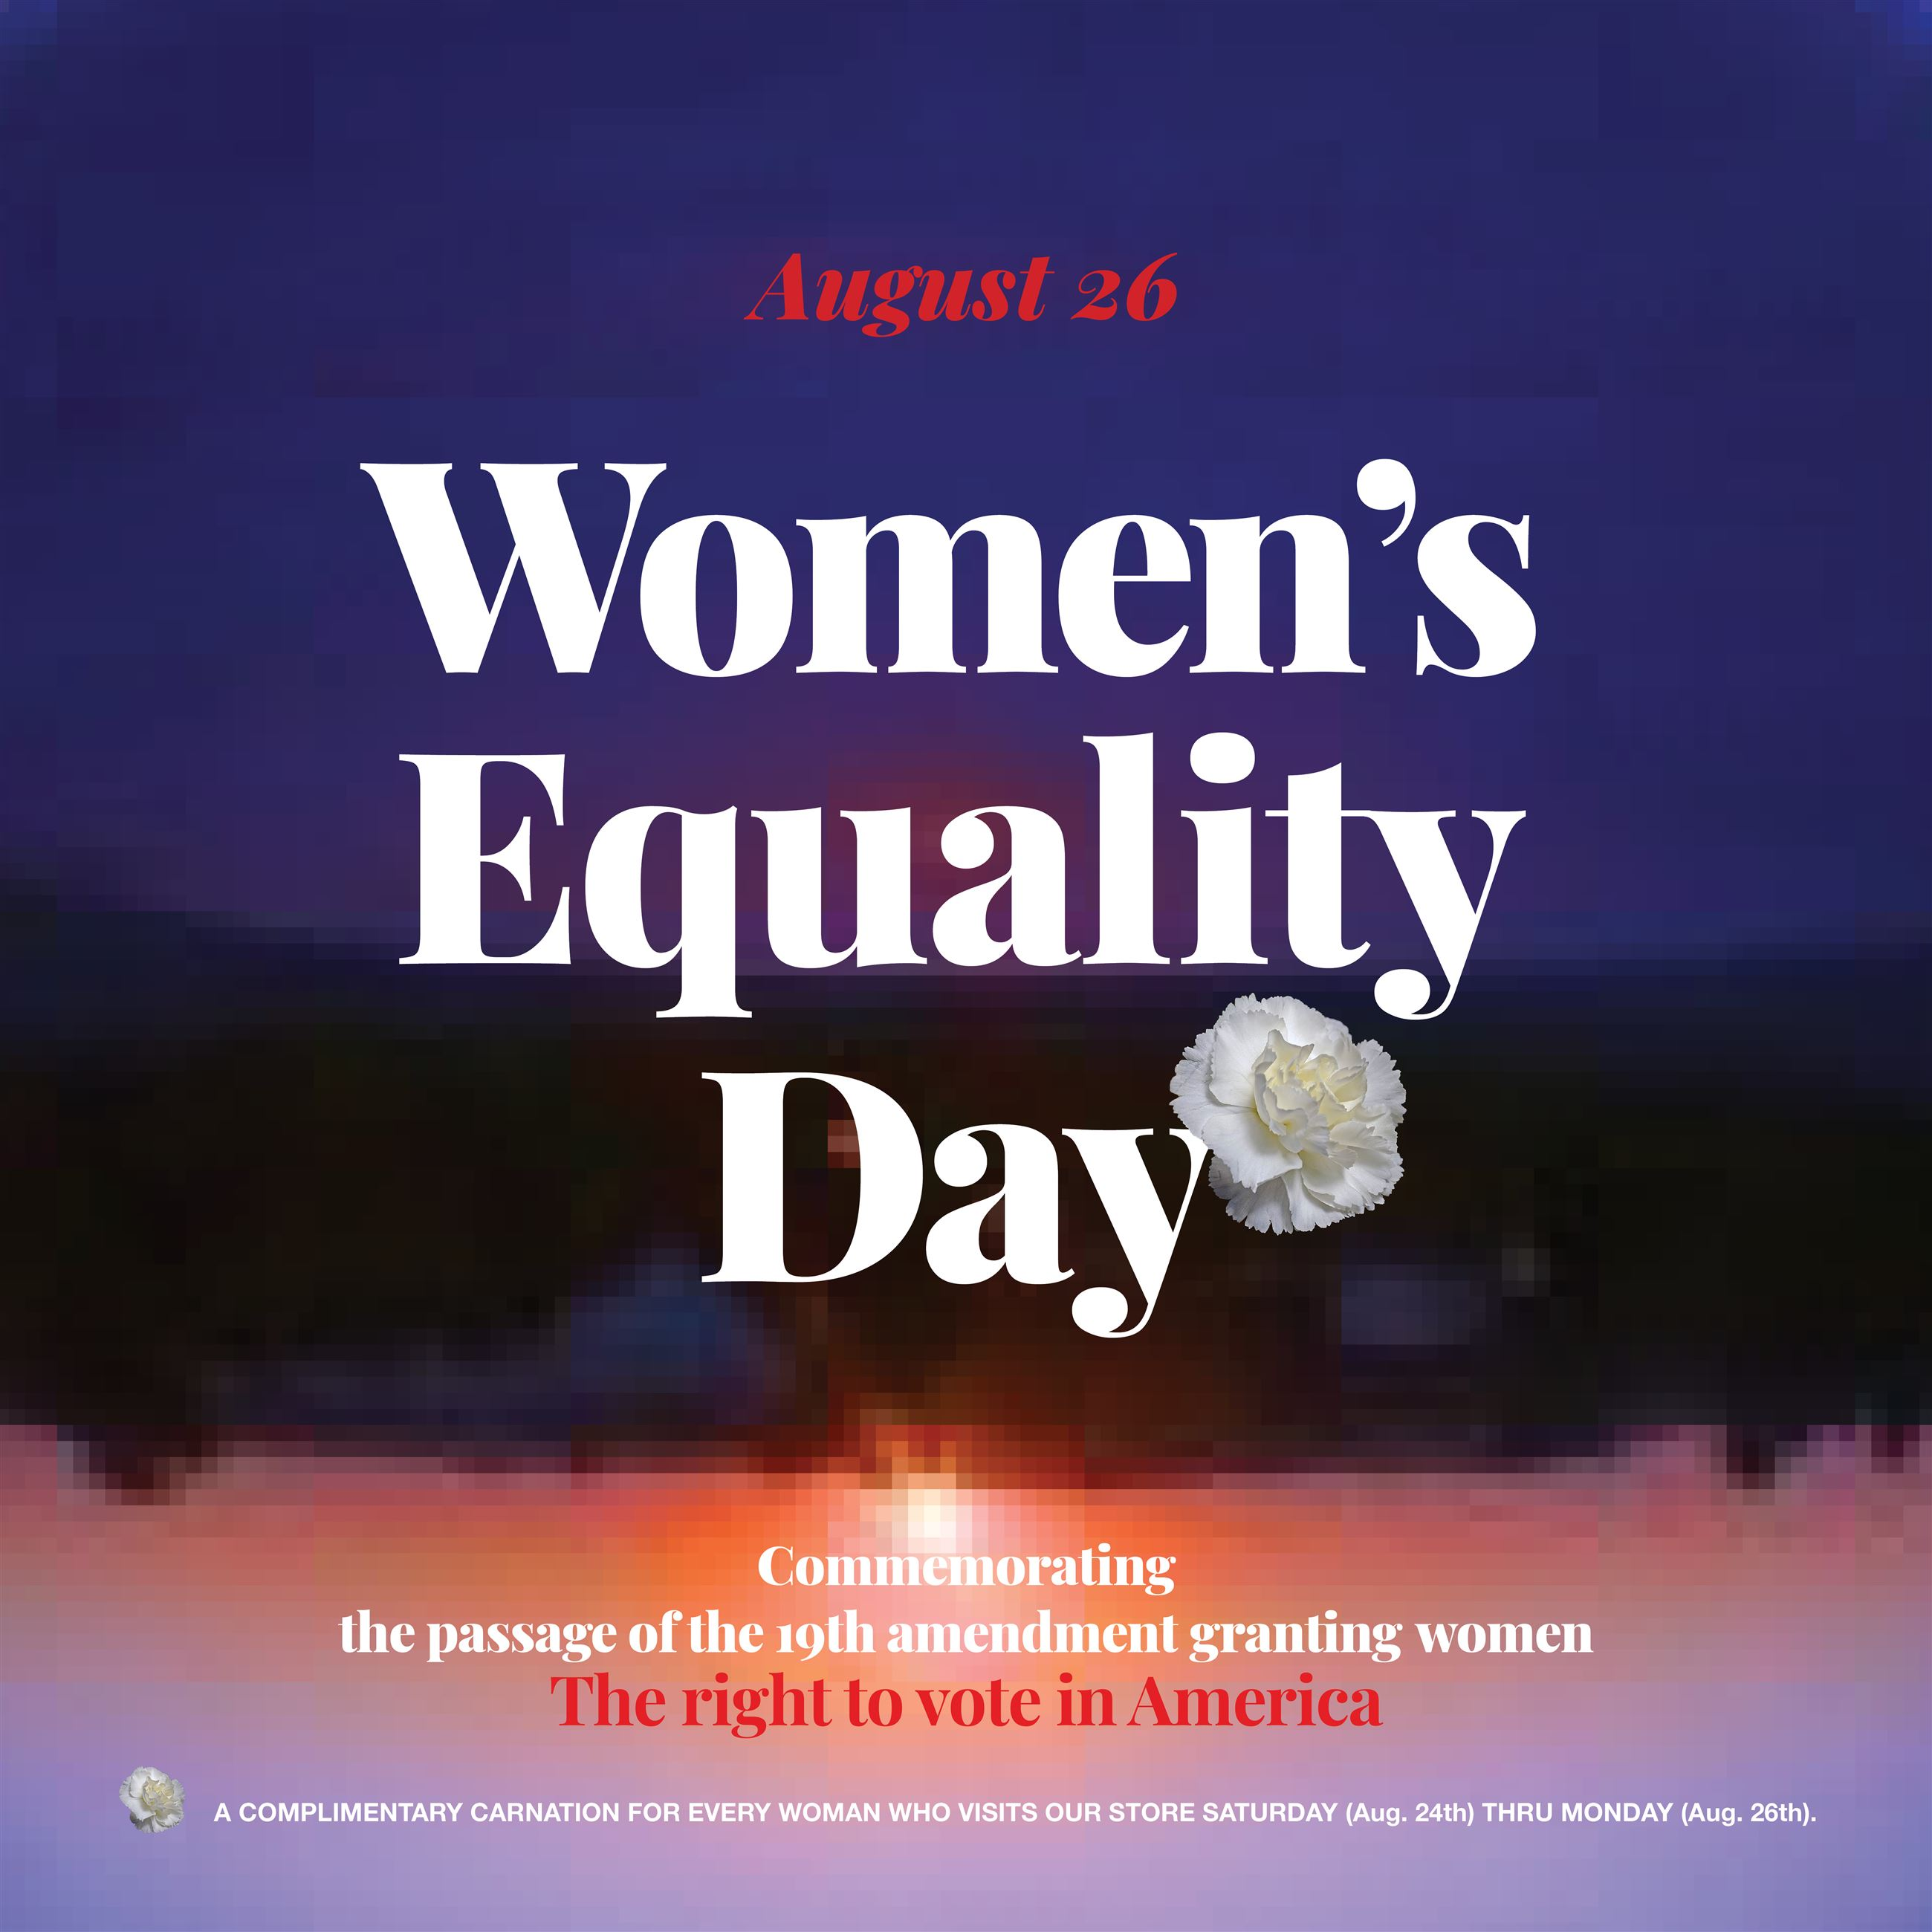 WOMEN'S EQUALITY DAY EVENT